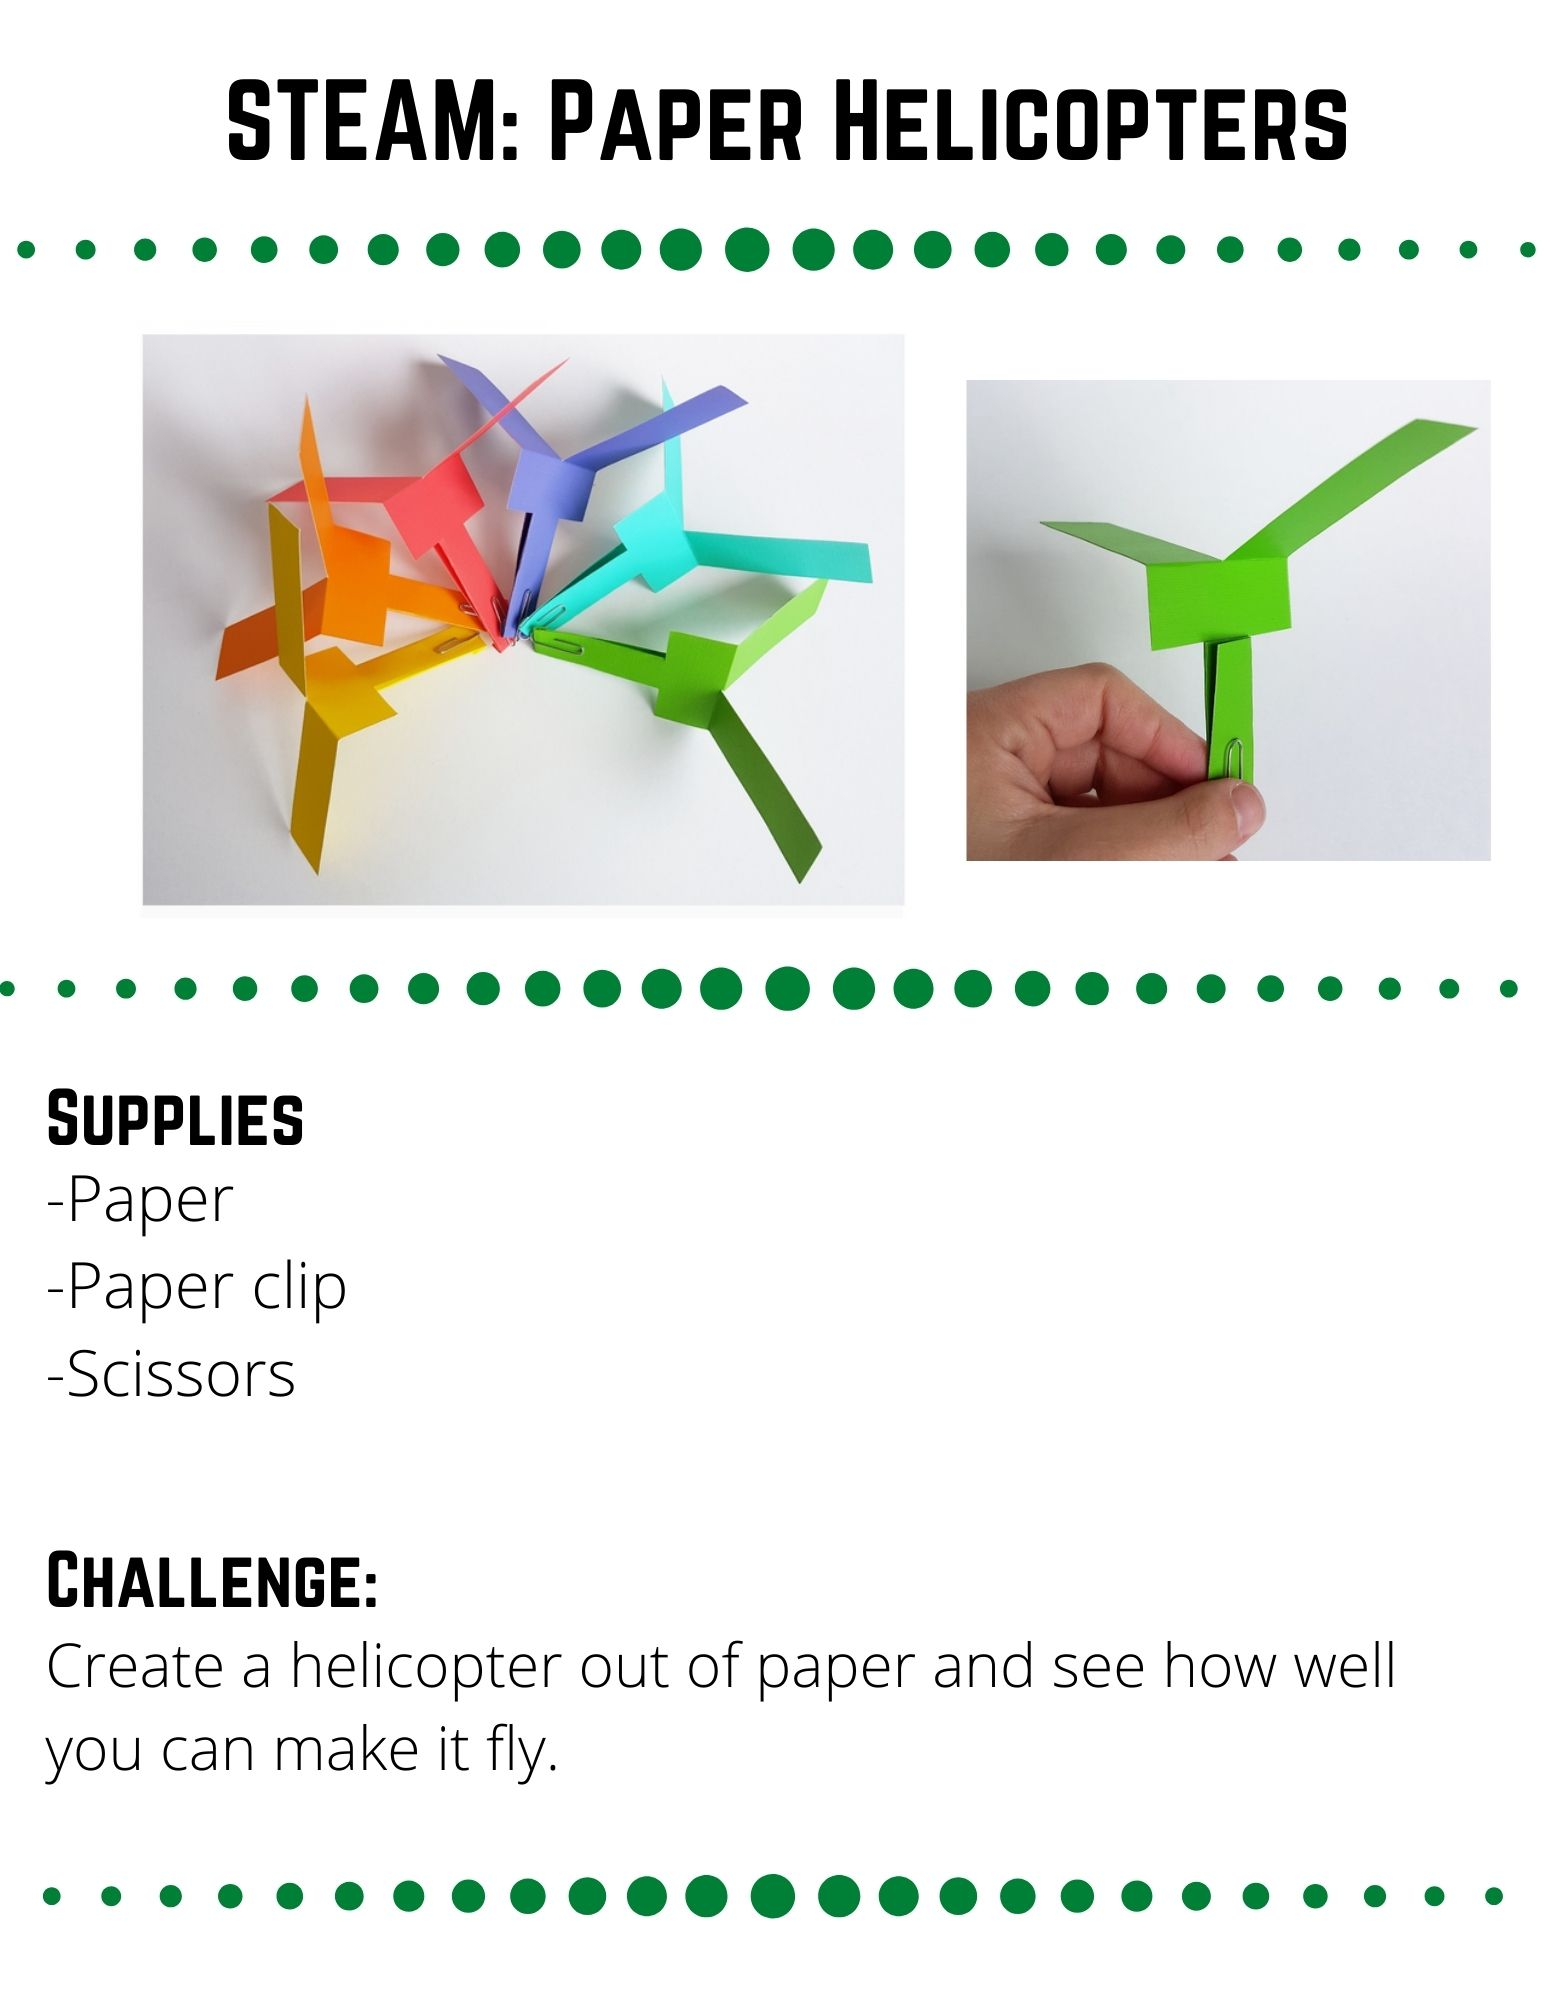 STEAM: Paper Helicopters. Supplies: -Paper -Paper clip -Scissors. Create a helicopter out of paper and see how well you can make it fly. Cut your paper into a 6 inch by 2 inch rectangle.  At one end, cut about 3 inches up the middle of your paper (Image 1).  Next, make two cuts on either side about 1/2 an inch higher than your cut (Image 2).  Fold the uncut end inward (Image 3).  Flatten and fold up a small piece of your paper. Then add a paper clip to hold things in place and add weight so that your helicopter stays upwards while flying (Image 4).  Fold your cut end in opposite directions to create your helicopter blades (Image 5).Go up to a high place and drop your helicopter.  Watch it spin as it falls.  Alternatively, hold the paper clip end and throw your helicopter to watch it fly.